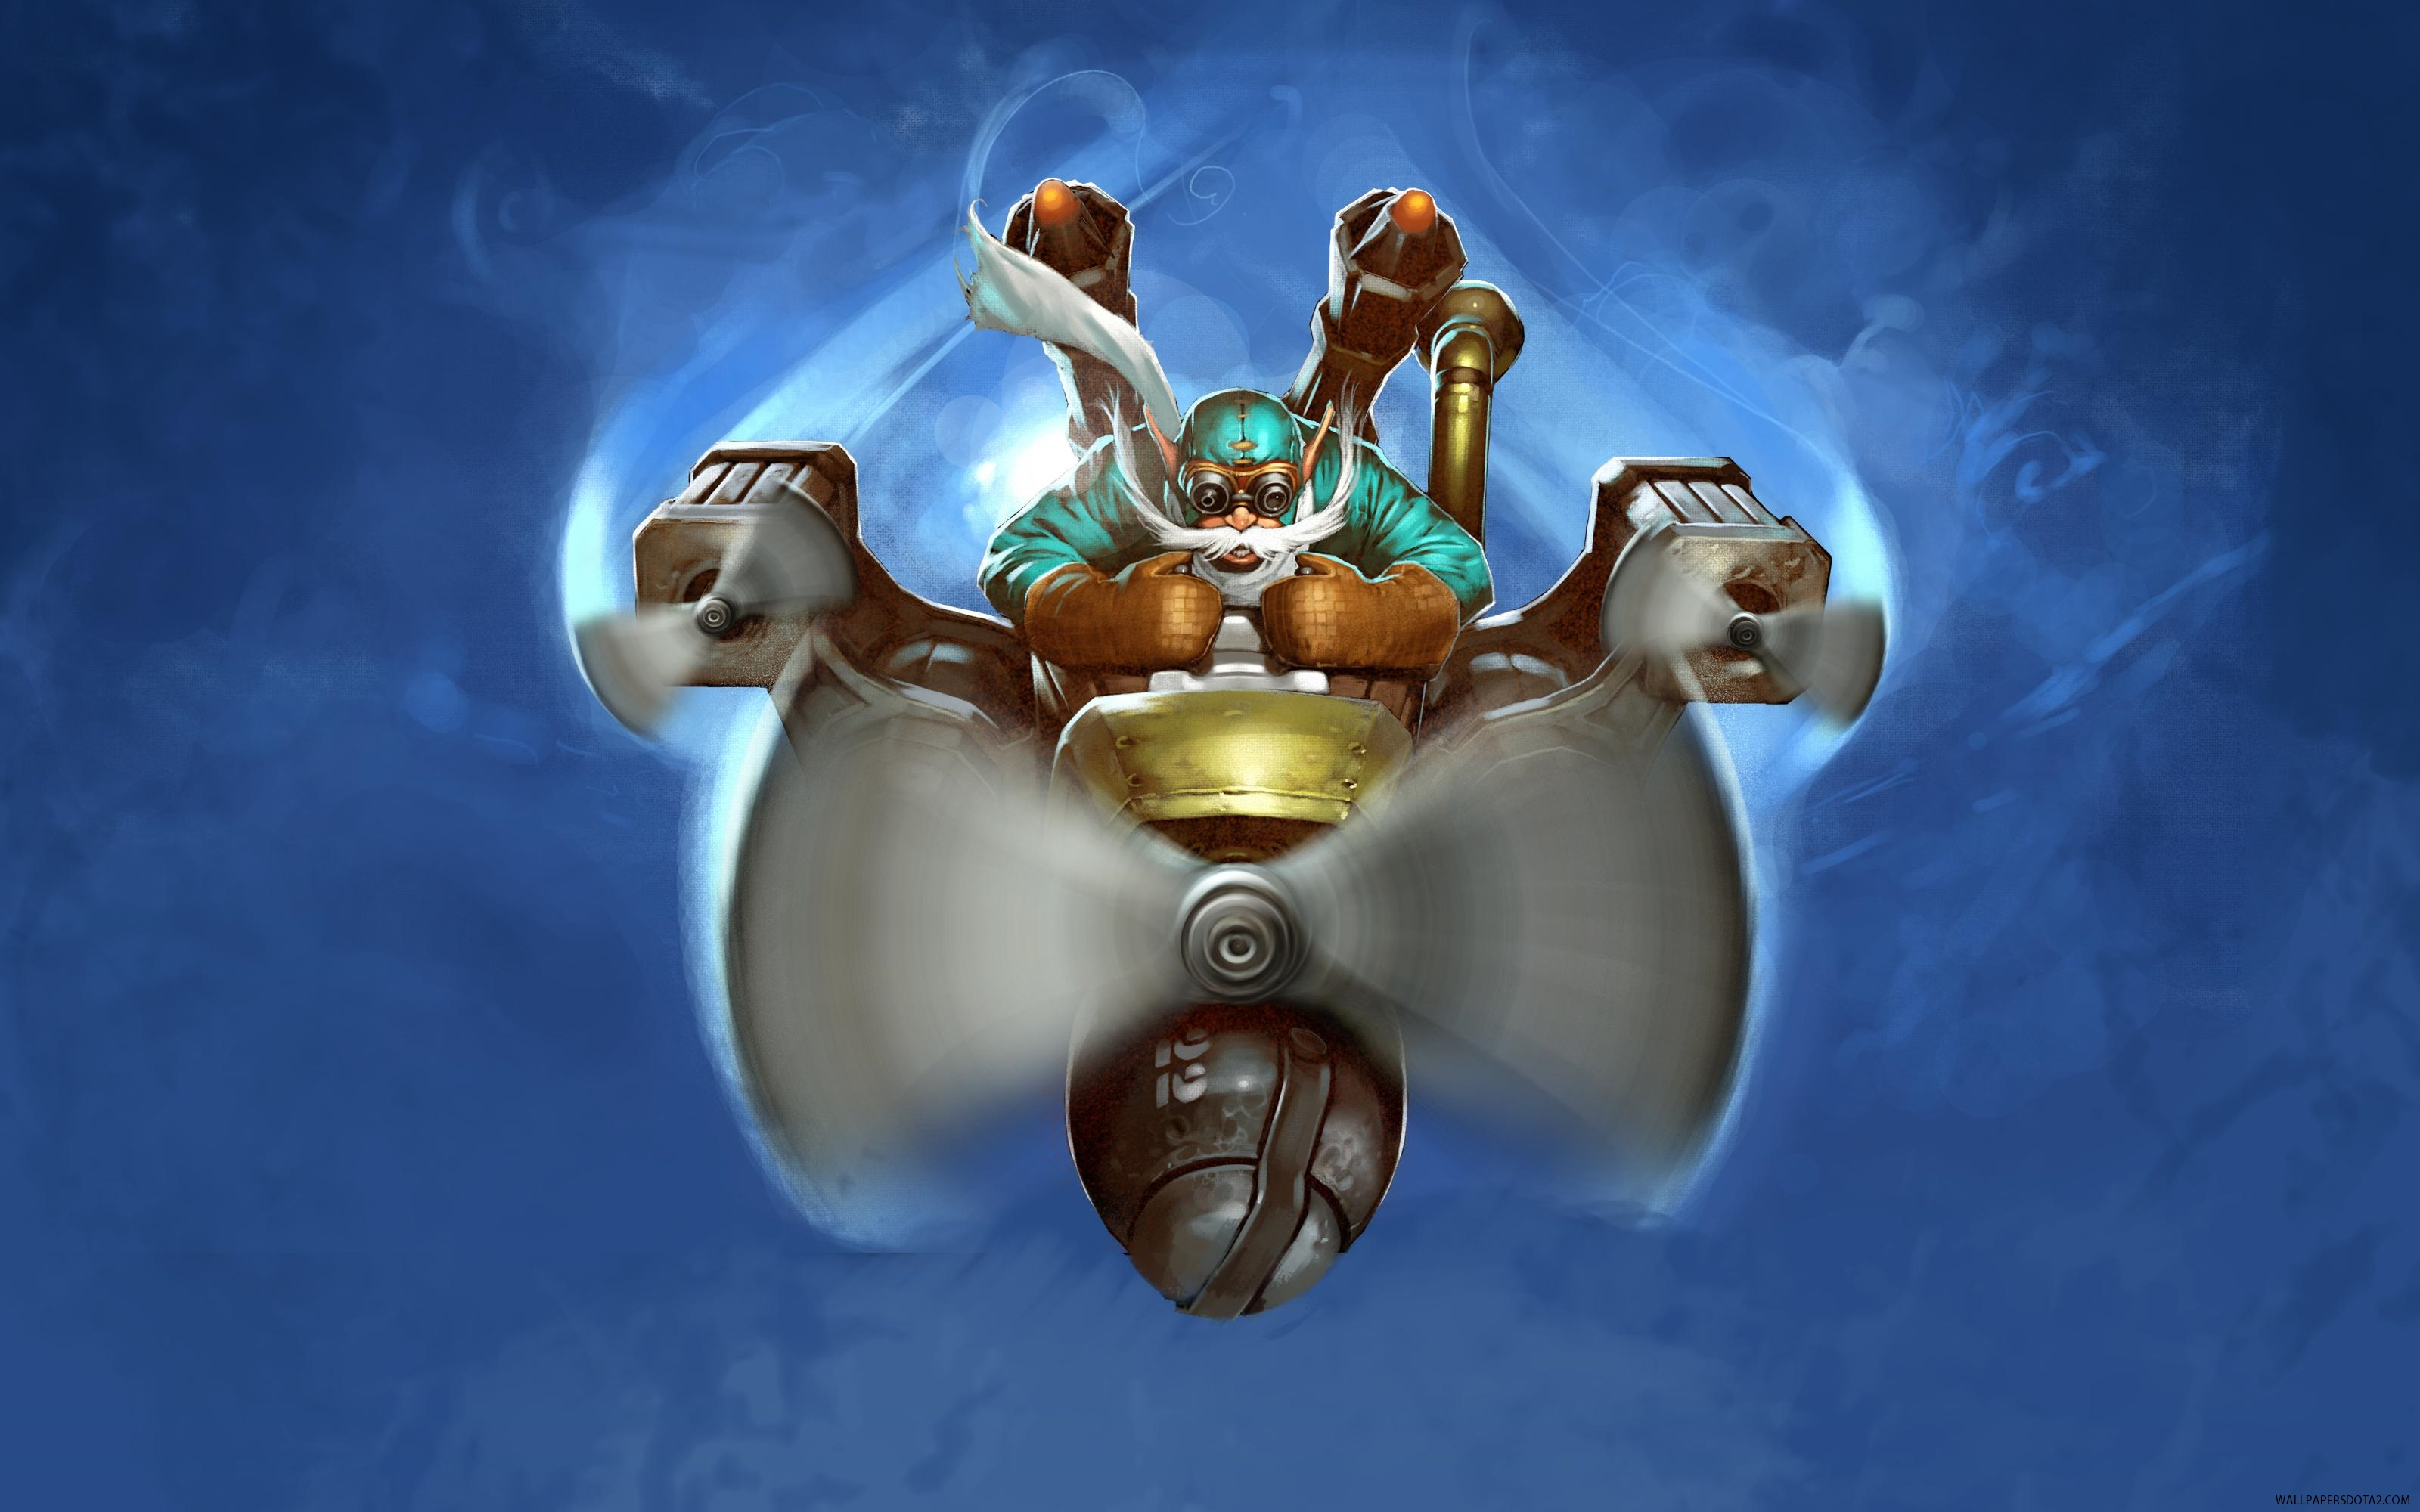 Gyrocopter high resolution desktop wallpapers Dota 2